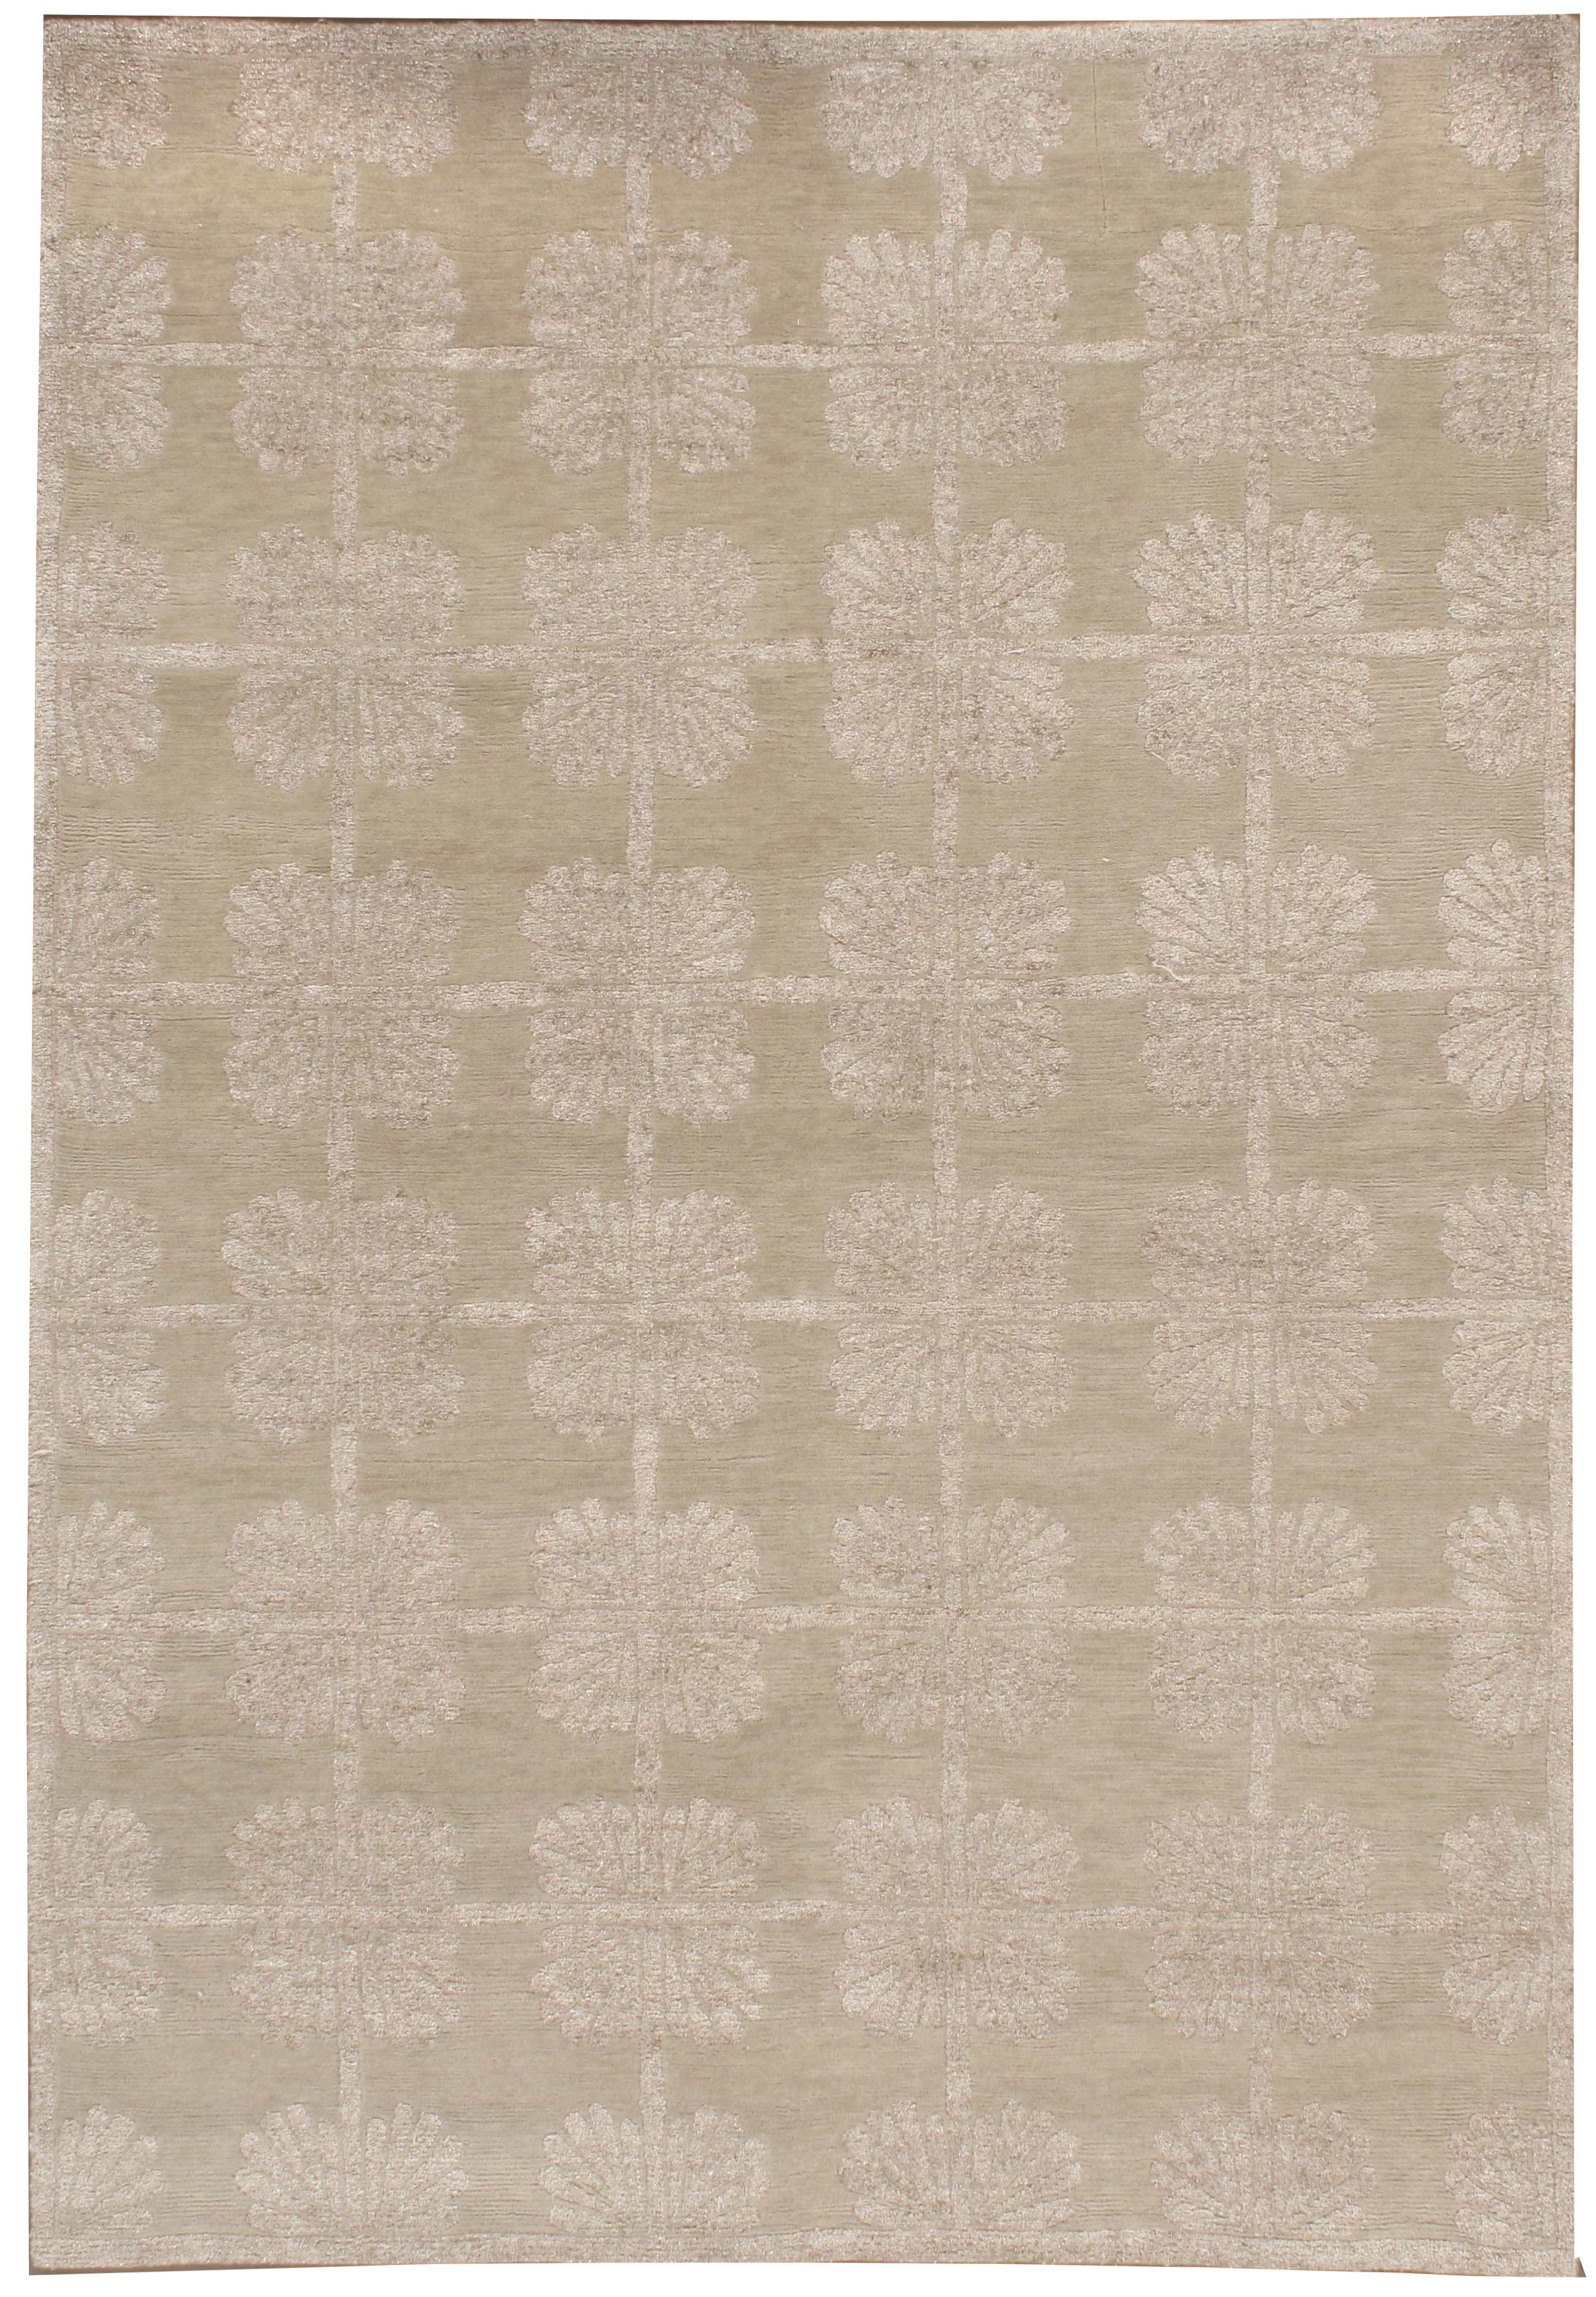 Silver Lace Contemporary Rug Bk12 Lavender Oriental